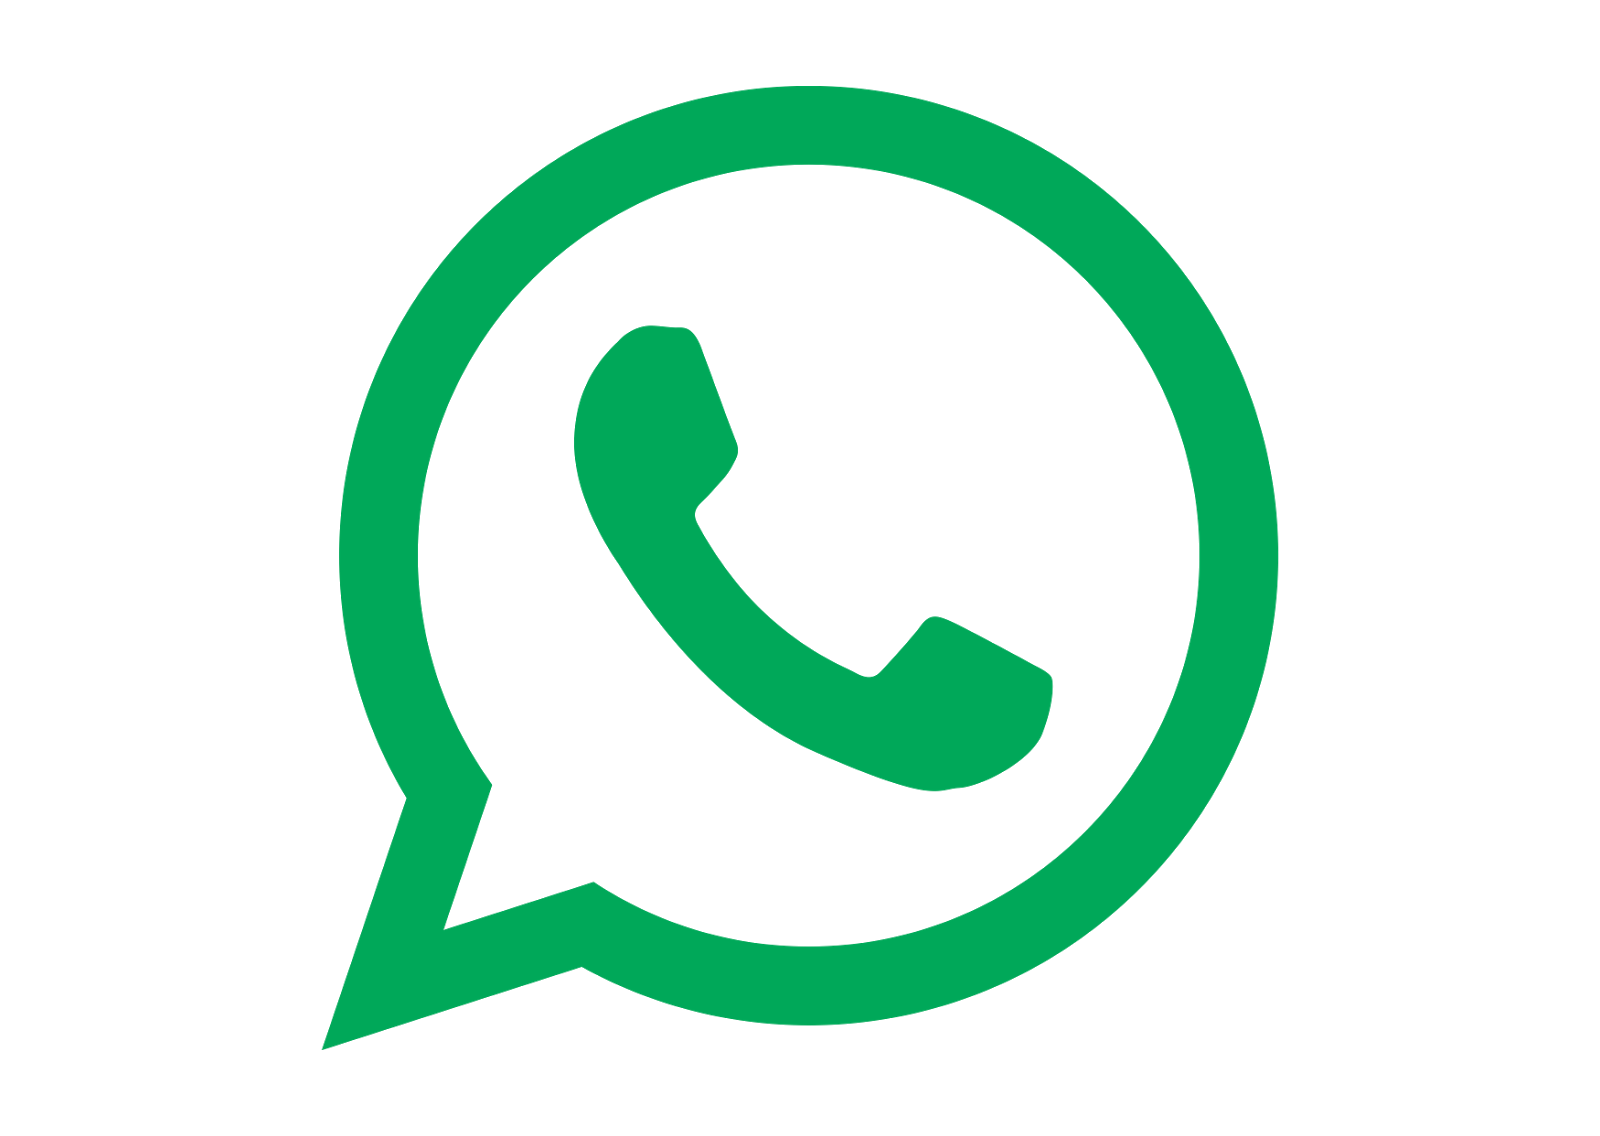 Whatsapp Logo Vector Download Free In This Post We Would Like To Share A Vector Logo That May Be You Are L Vector Whatsapp Vector Logo Gold Wallpaper Iphone